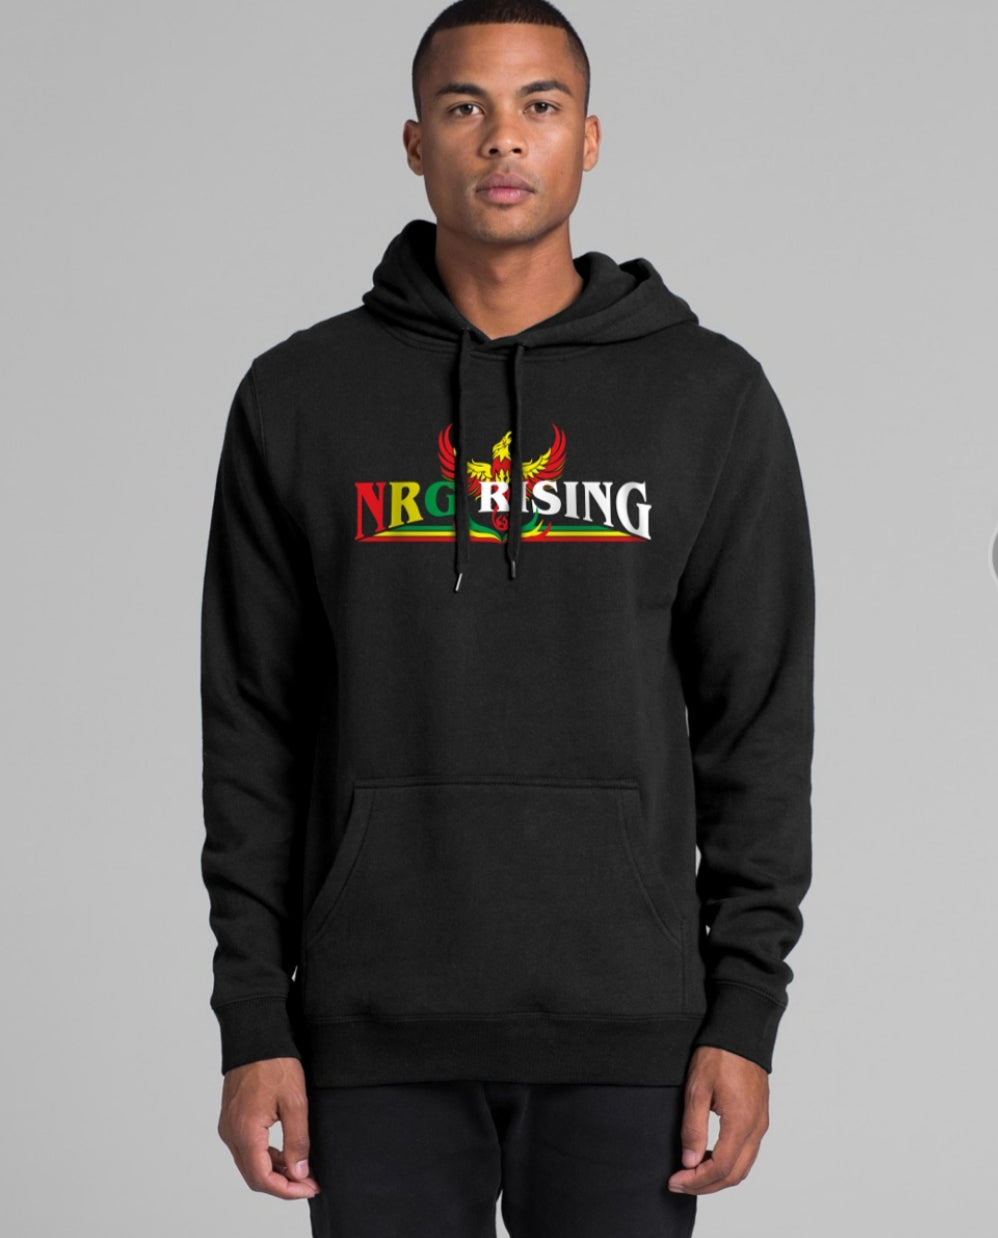 NRG RISING APPAREL